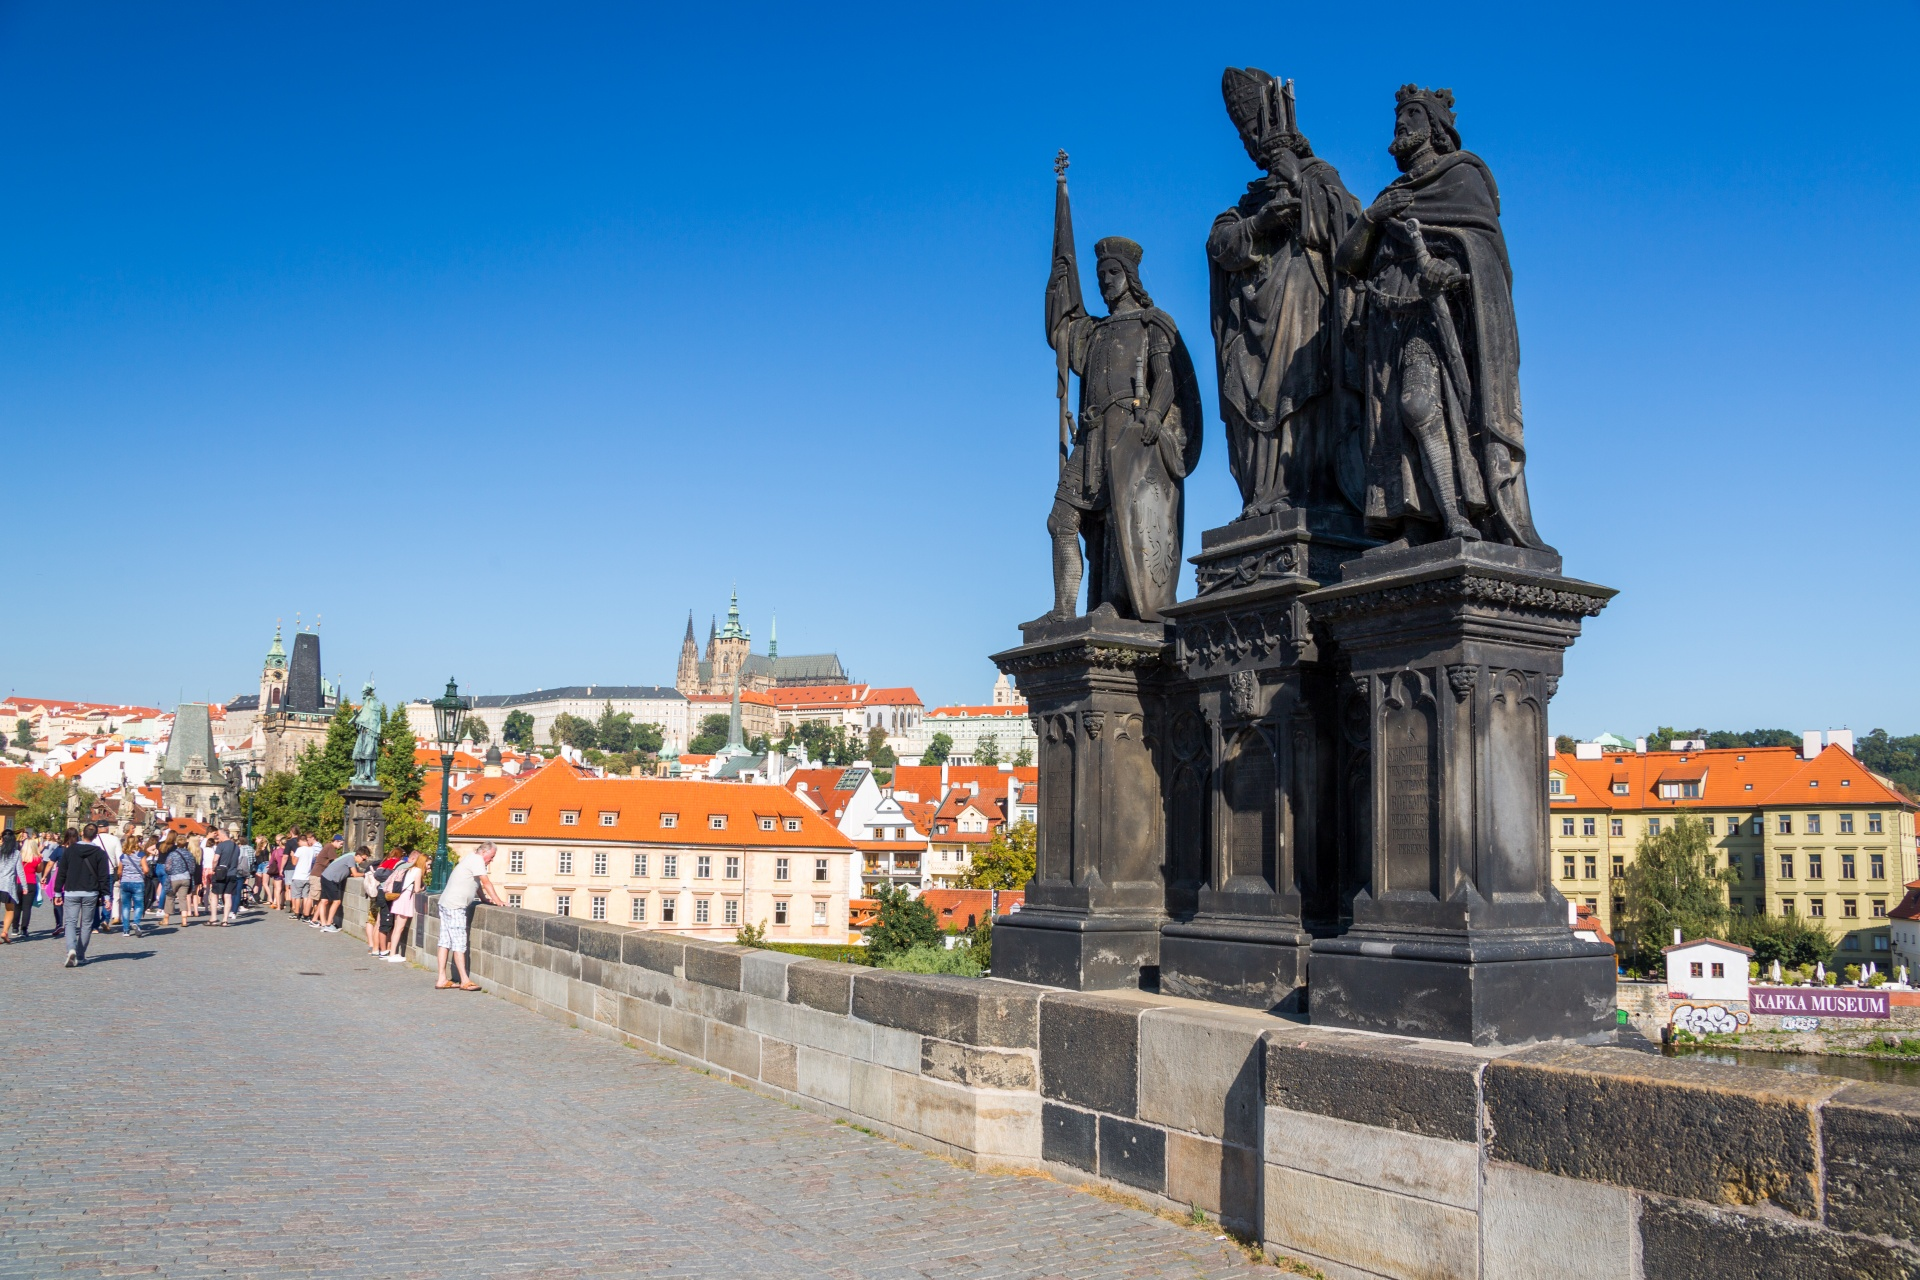 statues-on-charles-bridge-1551260590fAA